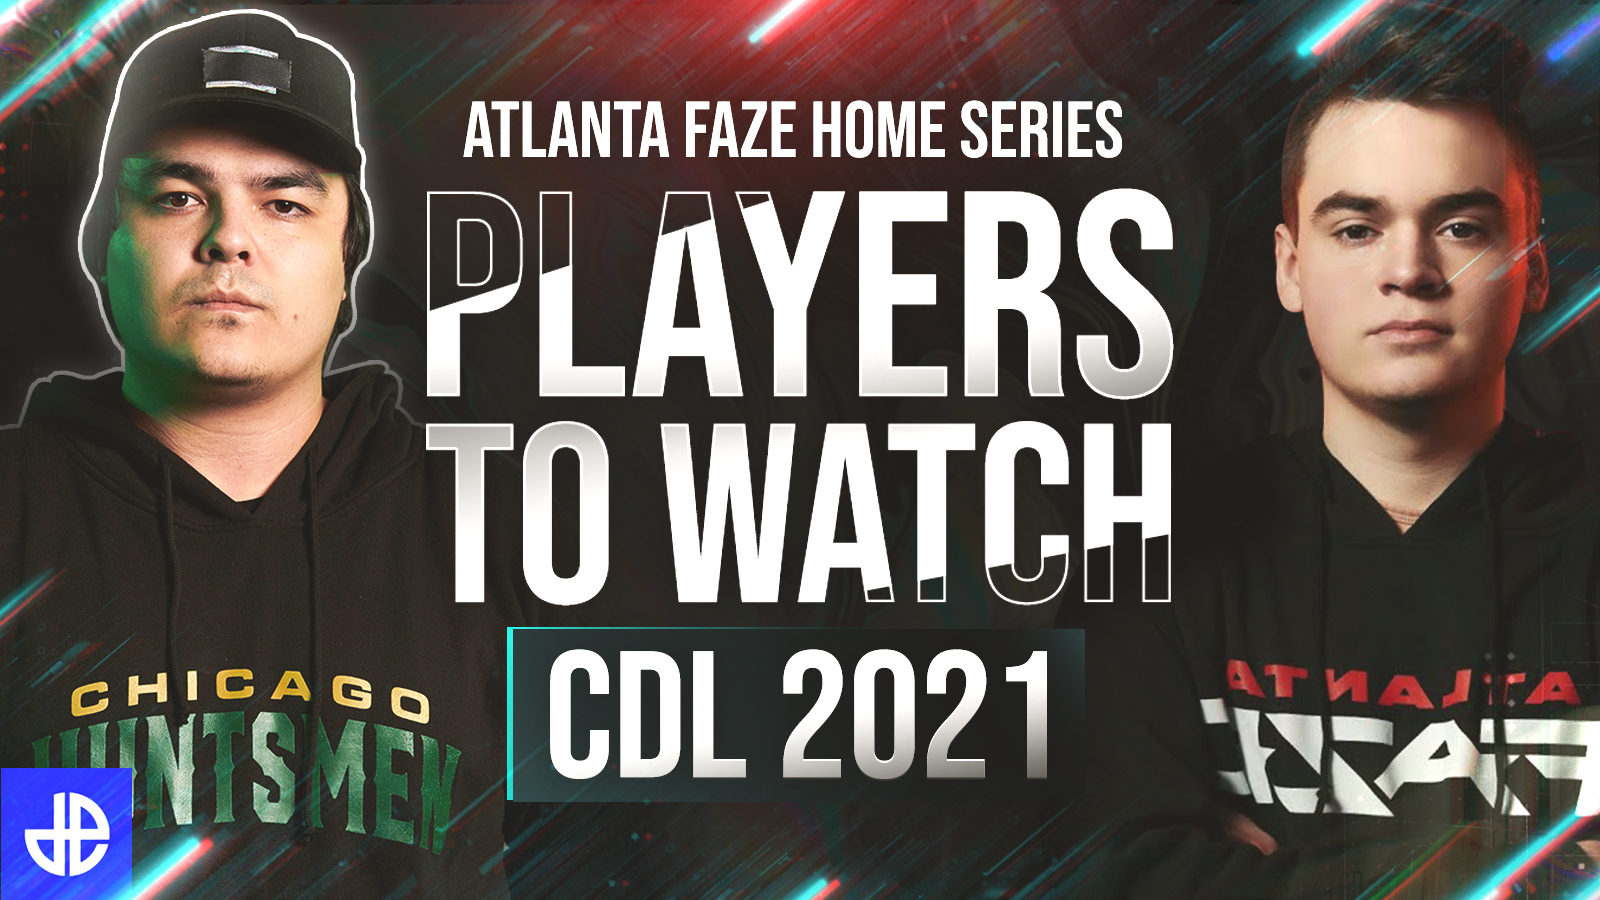 CDL 2021 FaZe opening weekend players to watch